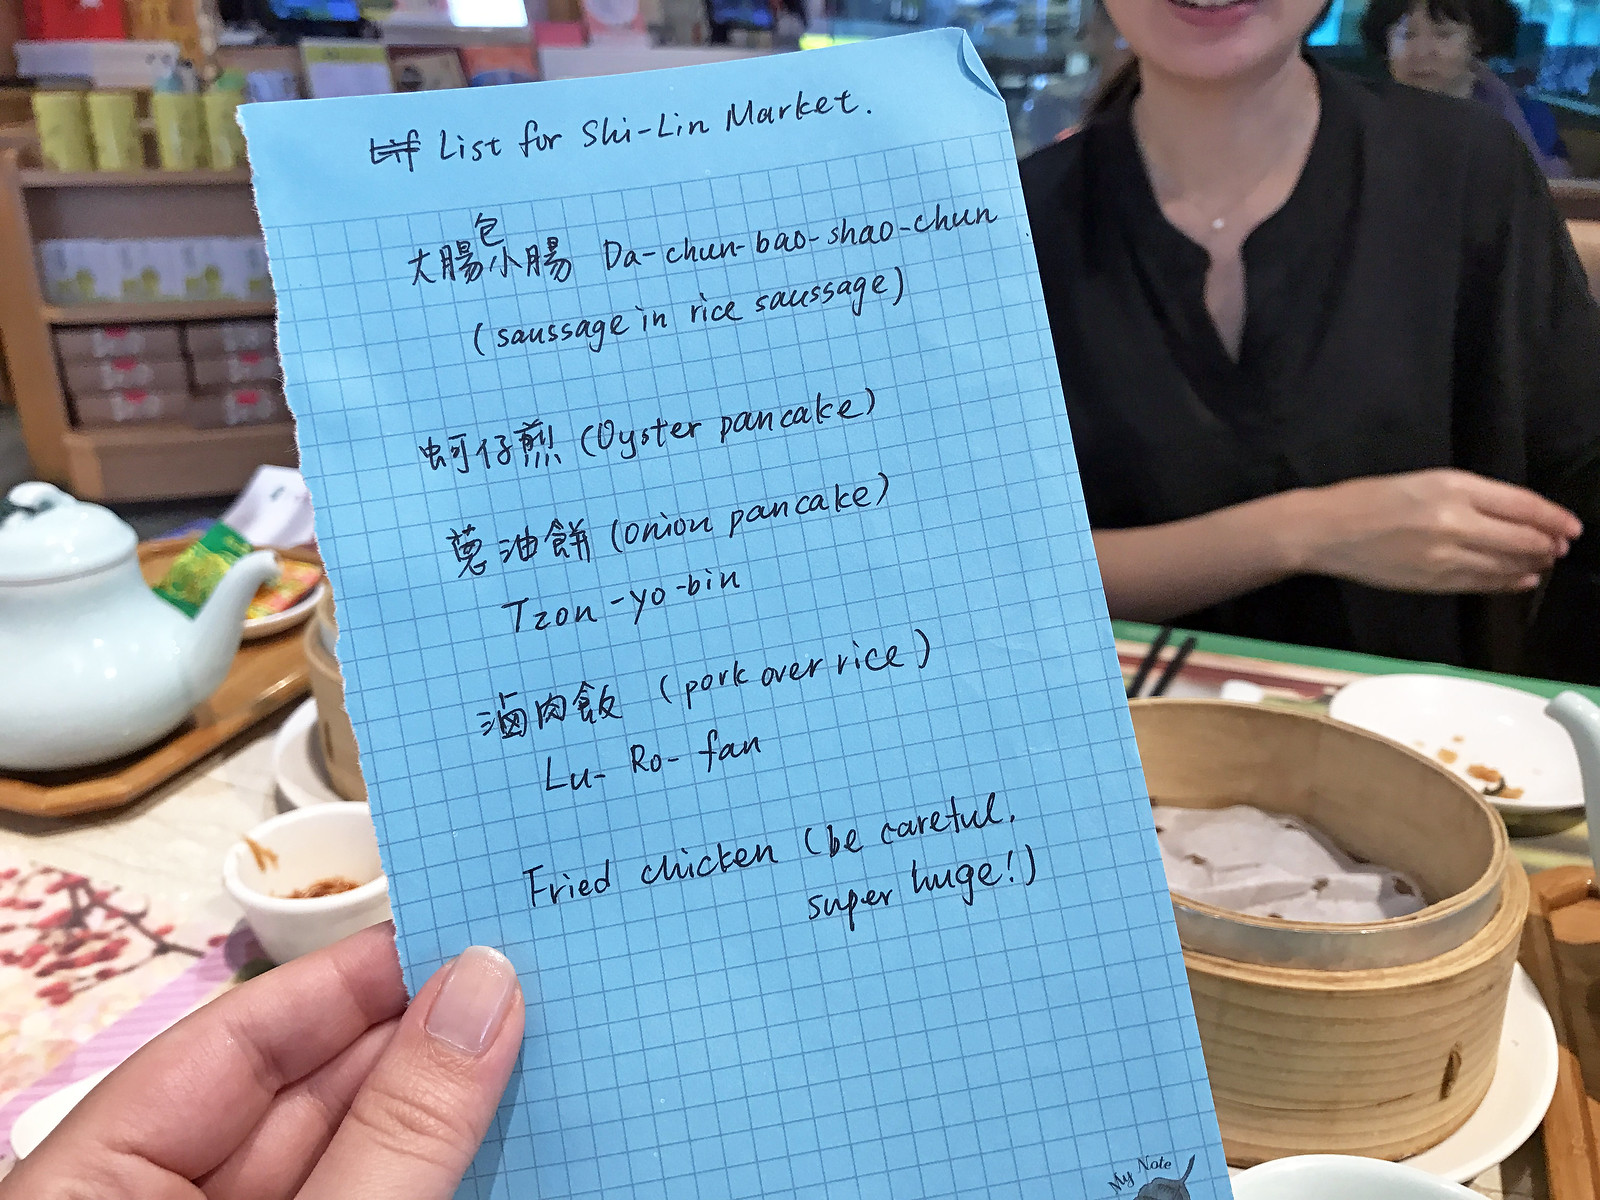 Jill's to-eat list